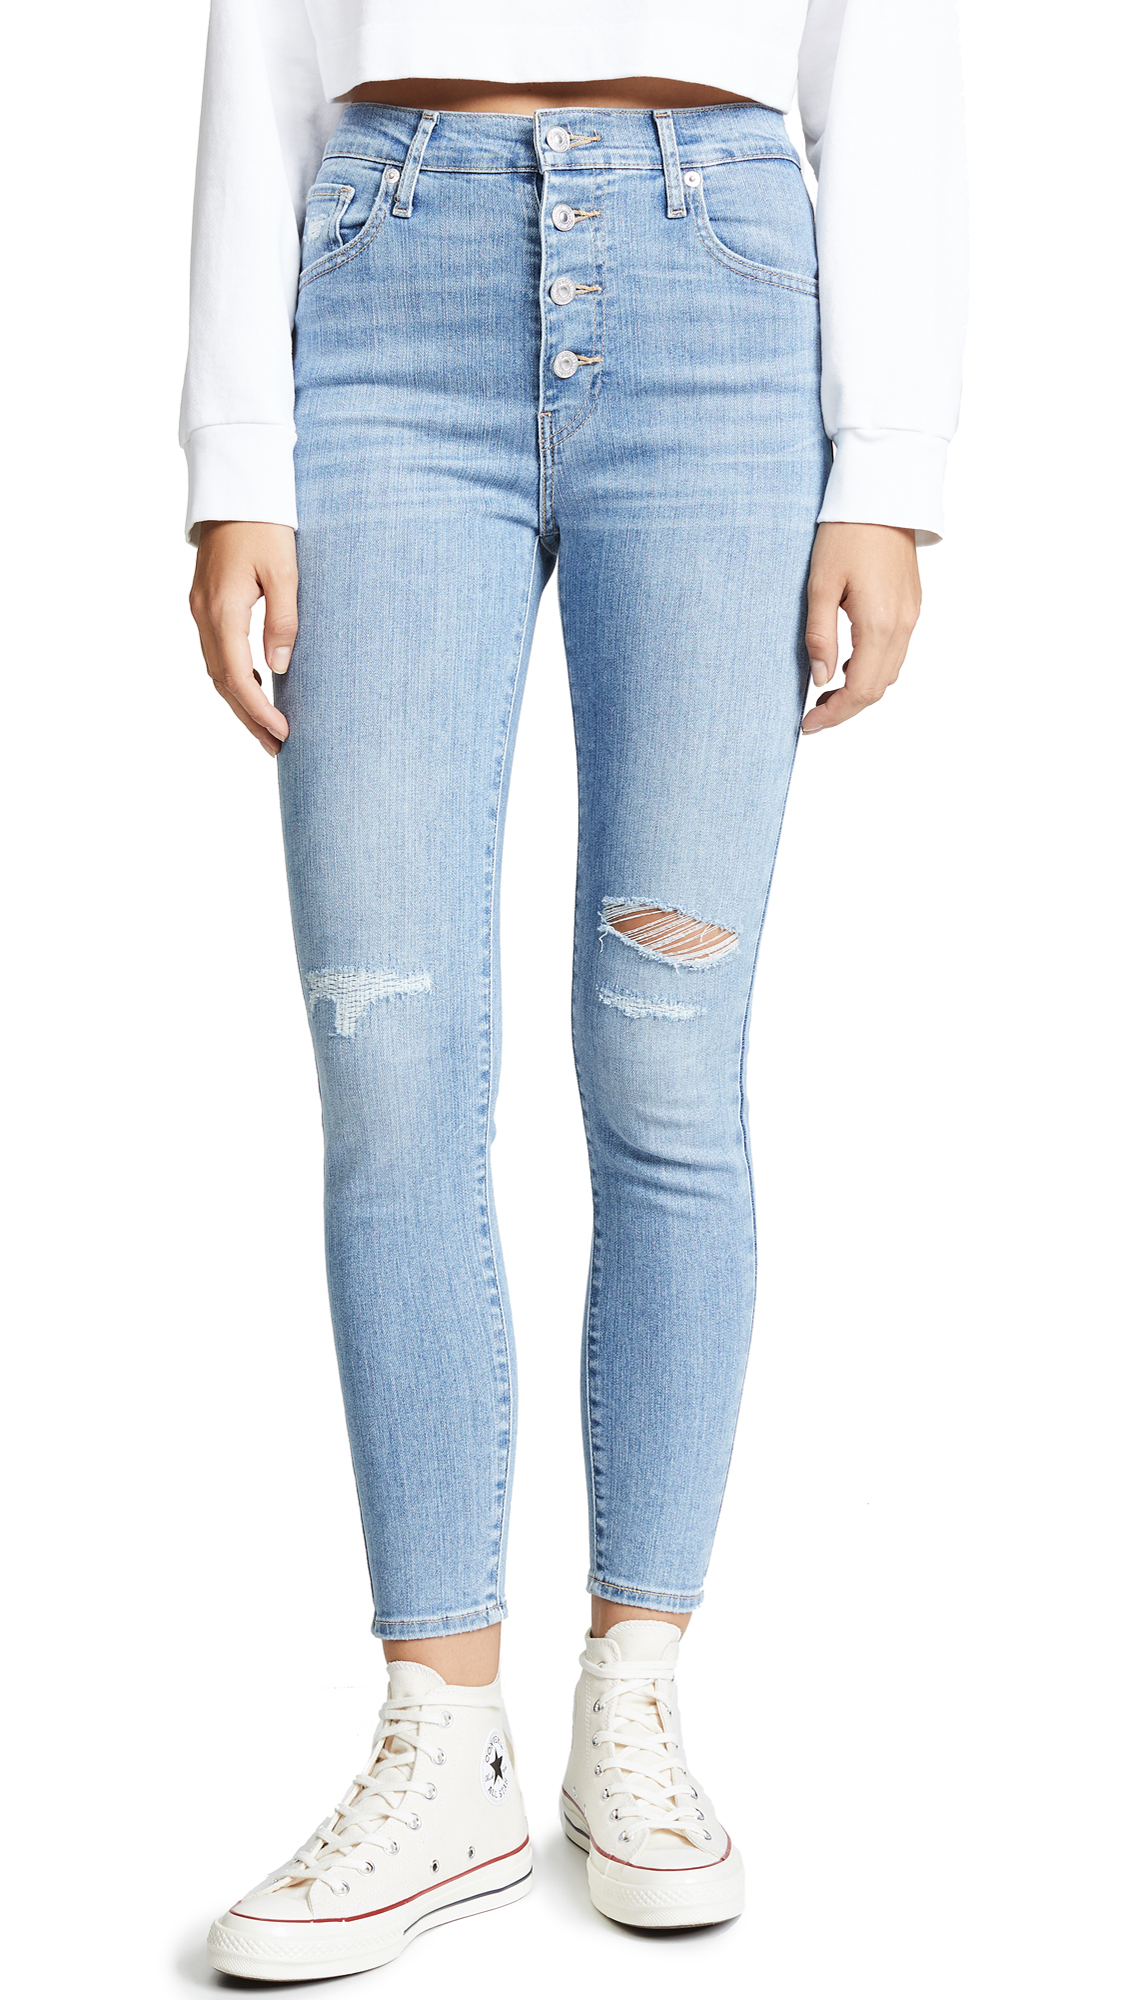 Levi's Mile High Super Skinny Ankle Jeans In Love Shack Baby